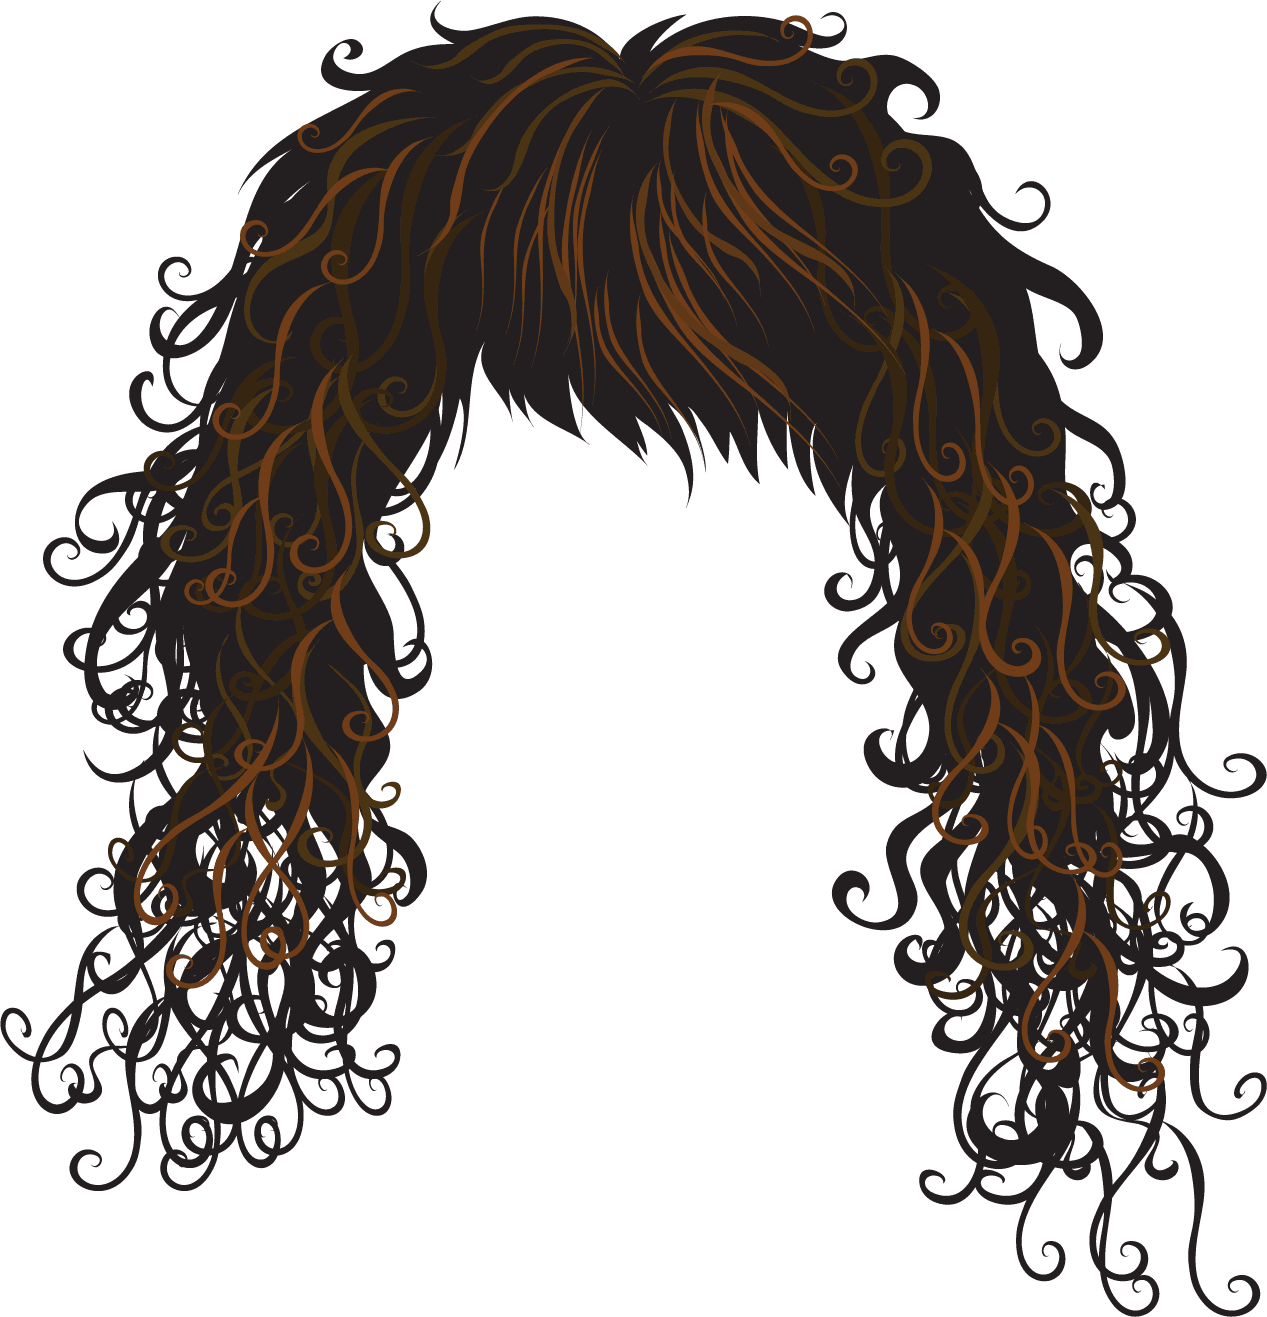 Weird hair clipart image royalty free Crazy Hair Clip Art - Cliparts.co image royalty free